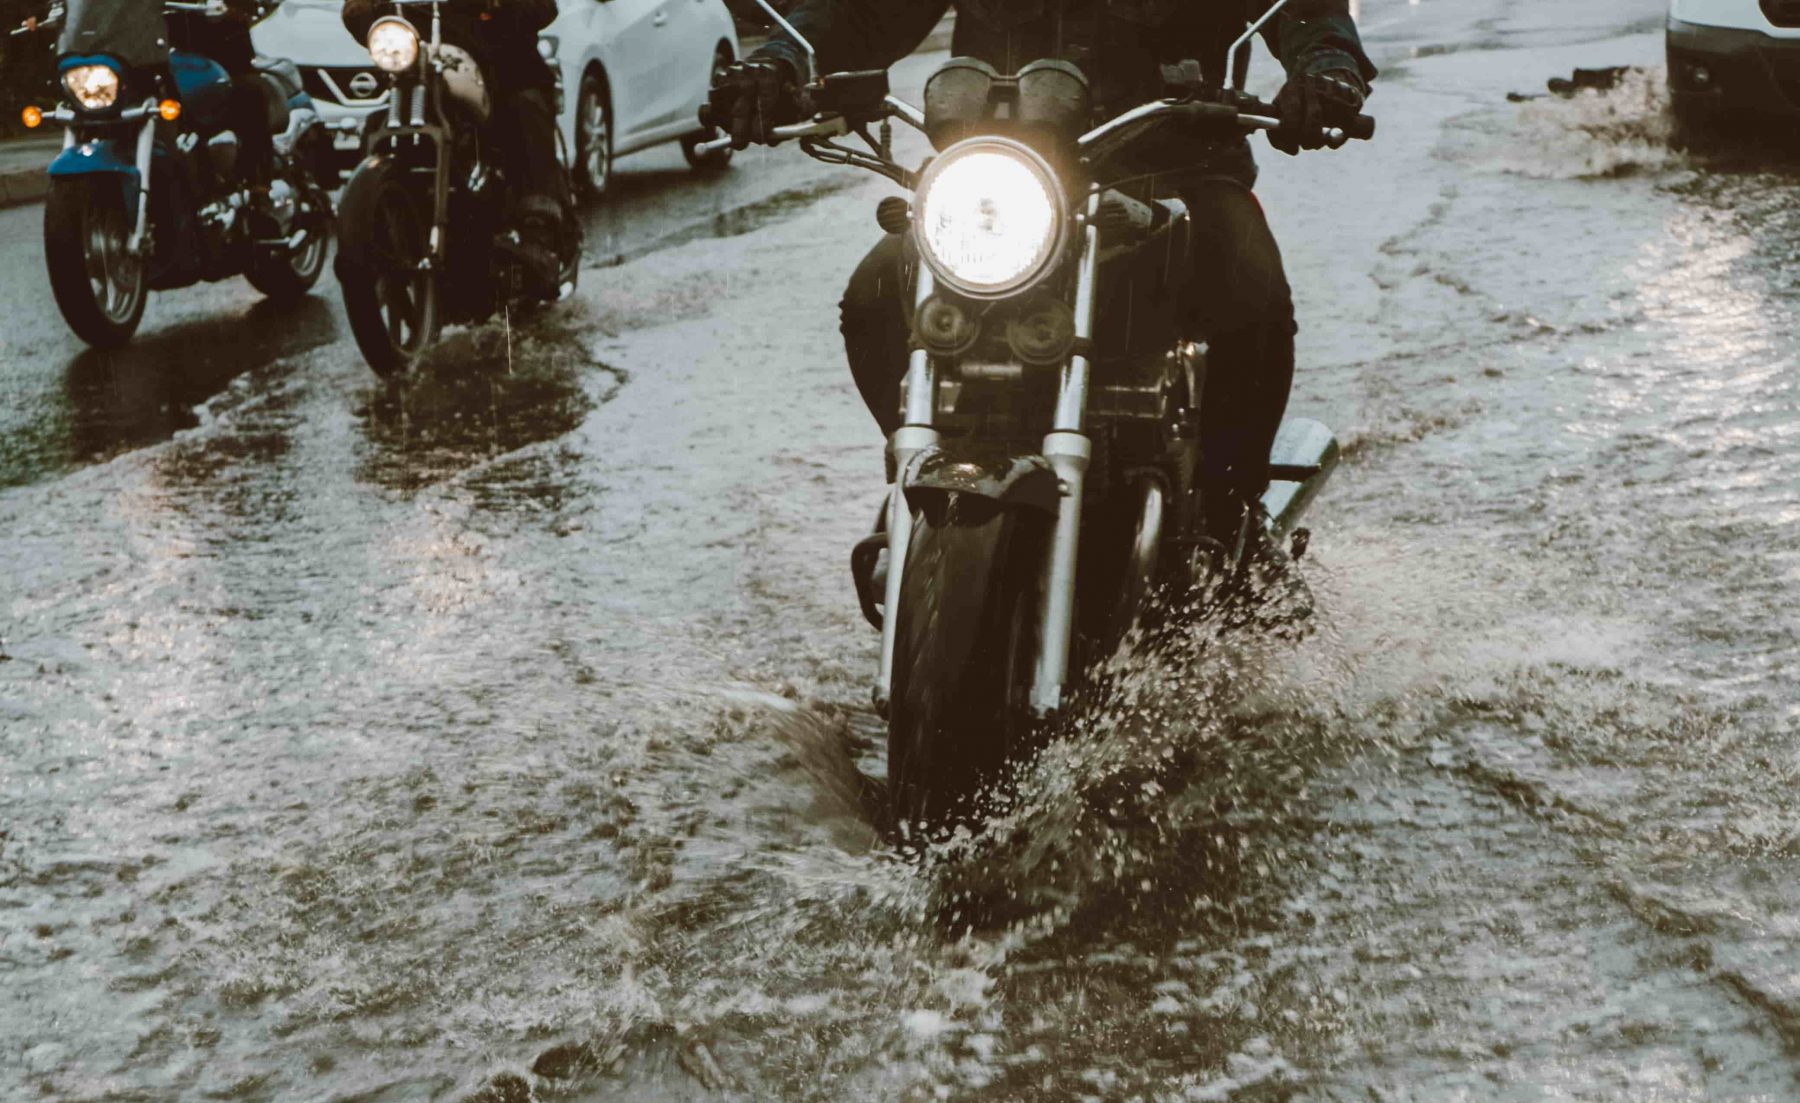 motorcycle moving in flood